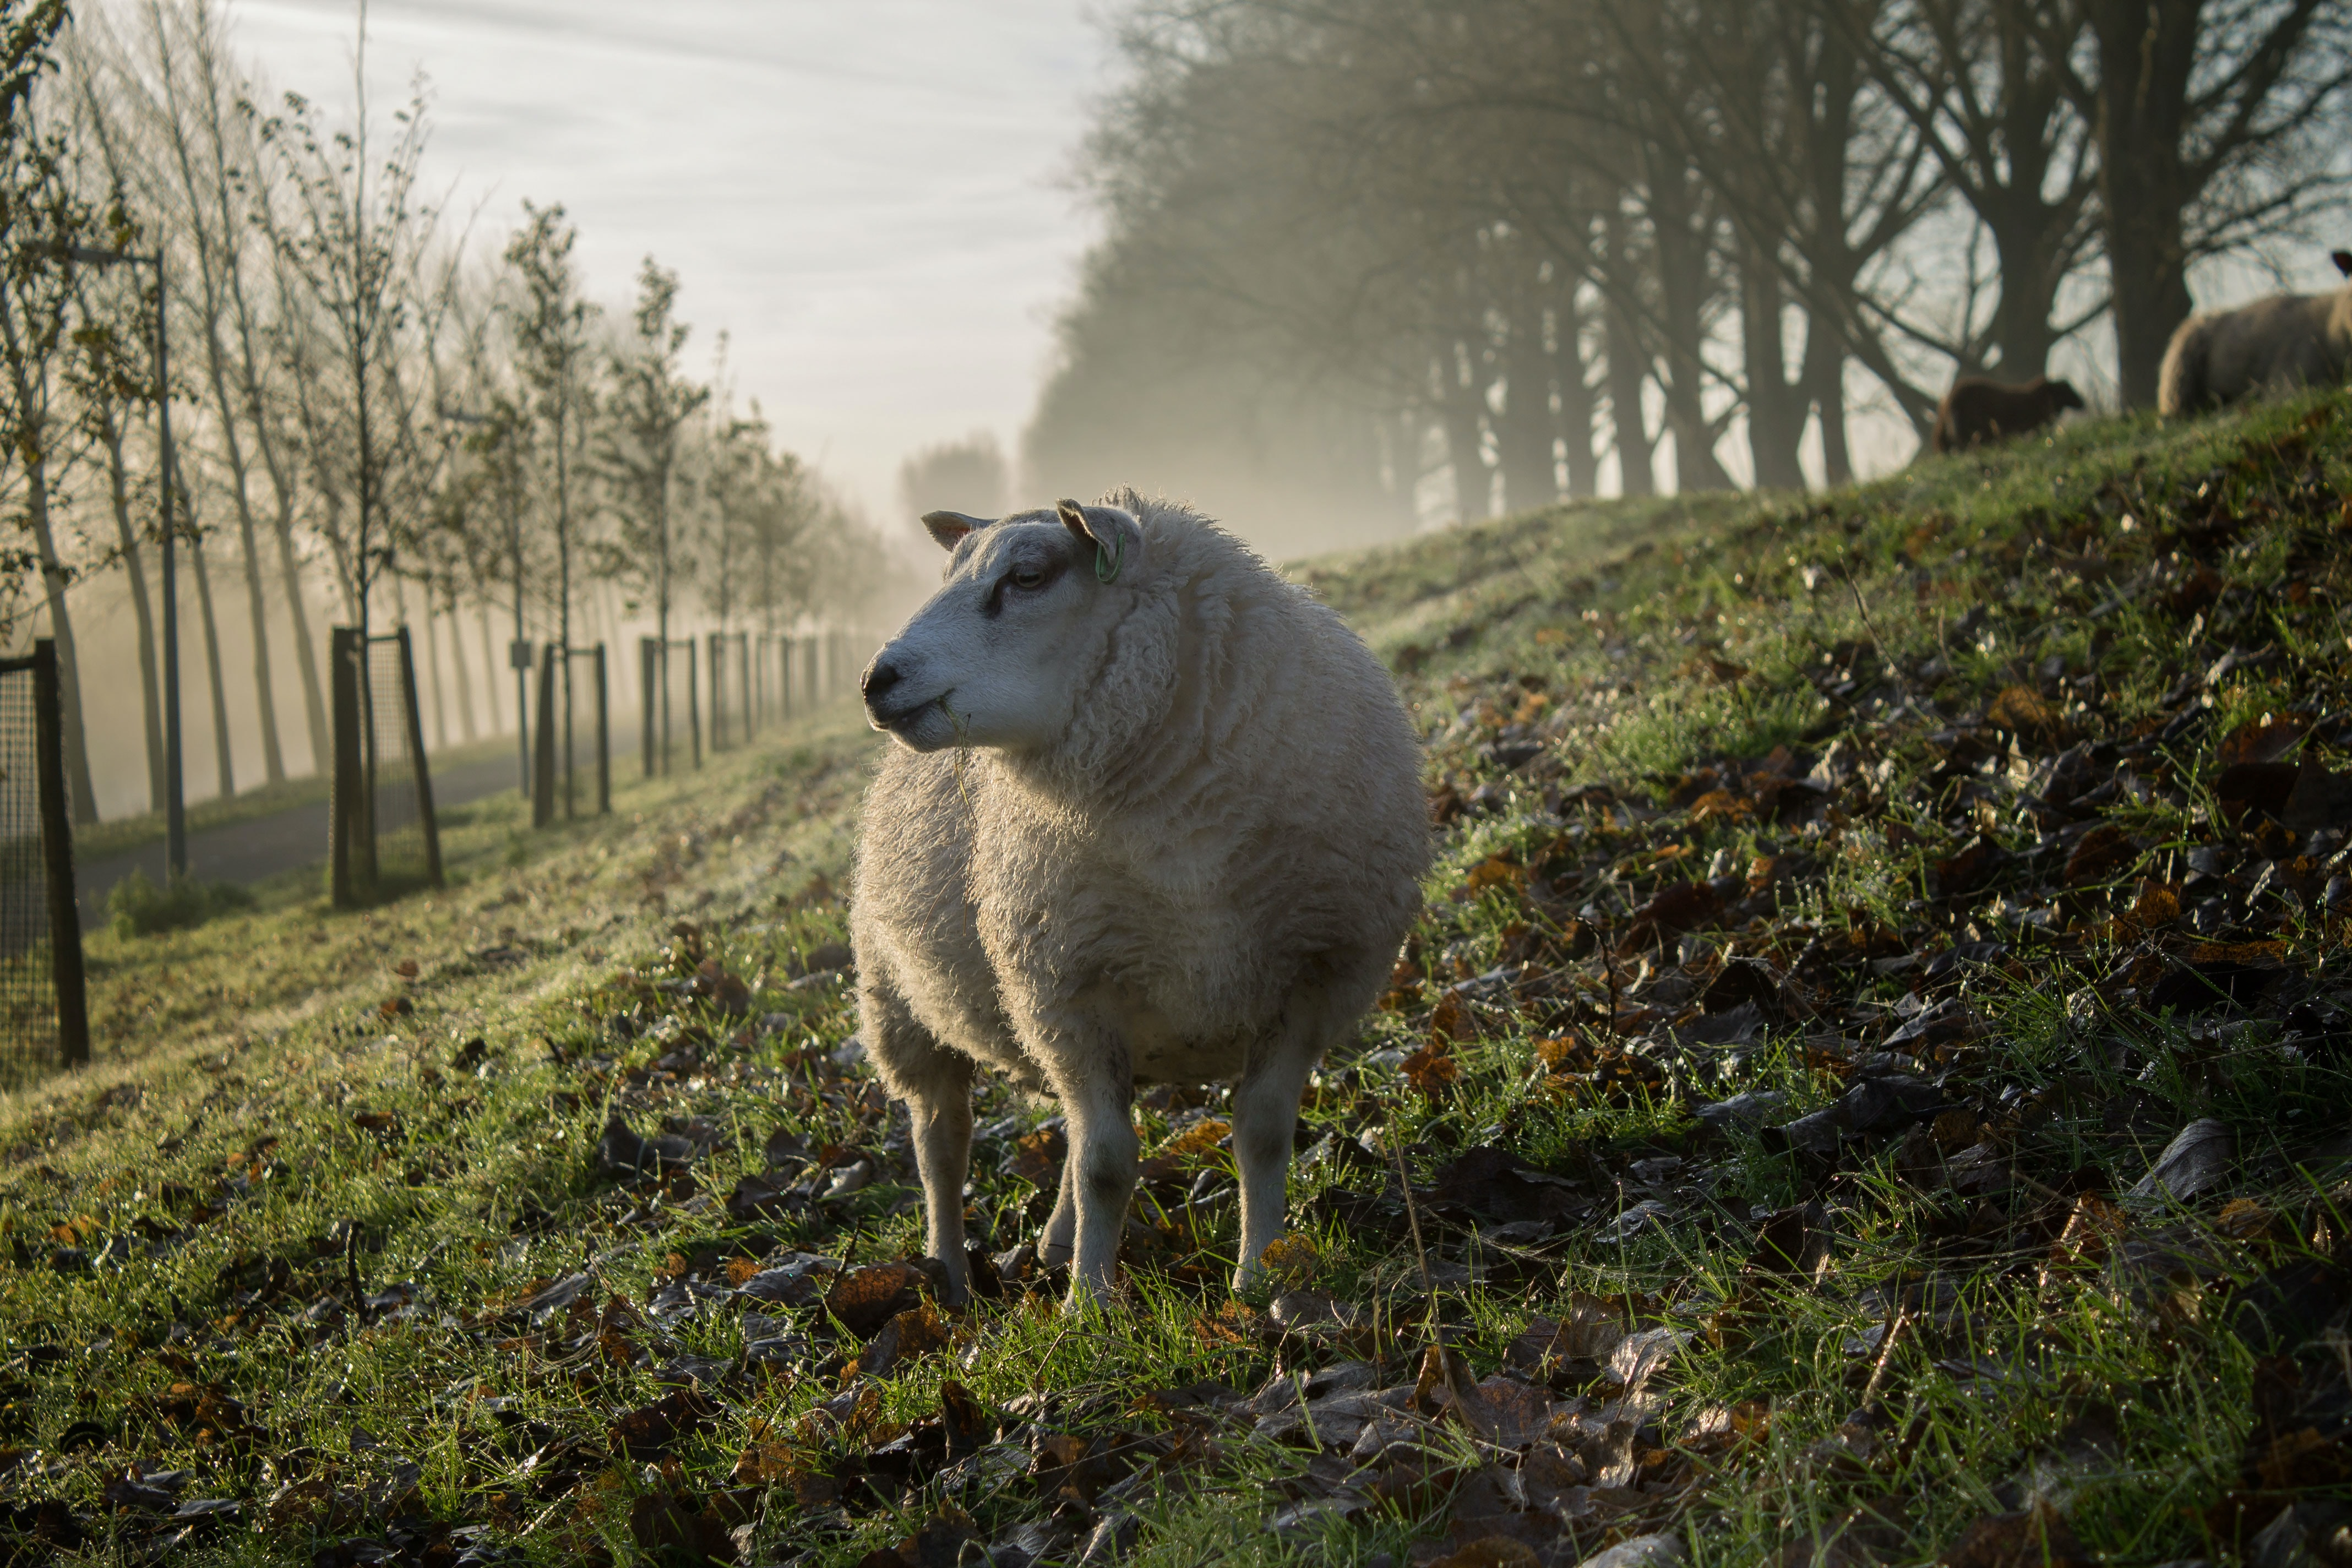 A sheep grazing on a grassy hill in an orchard in Hoofddorp